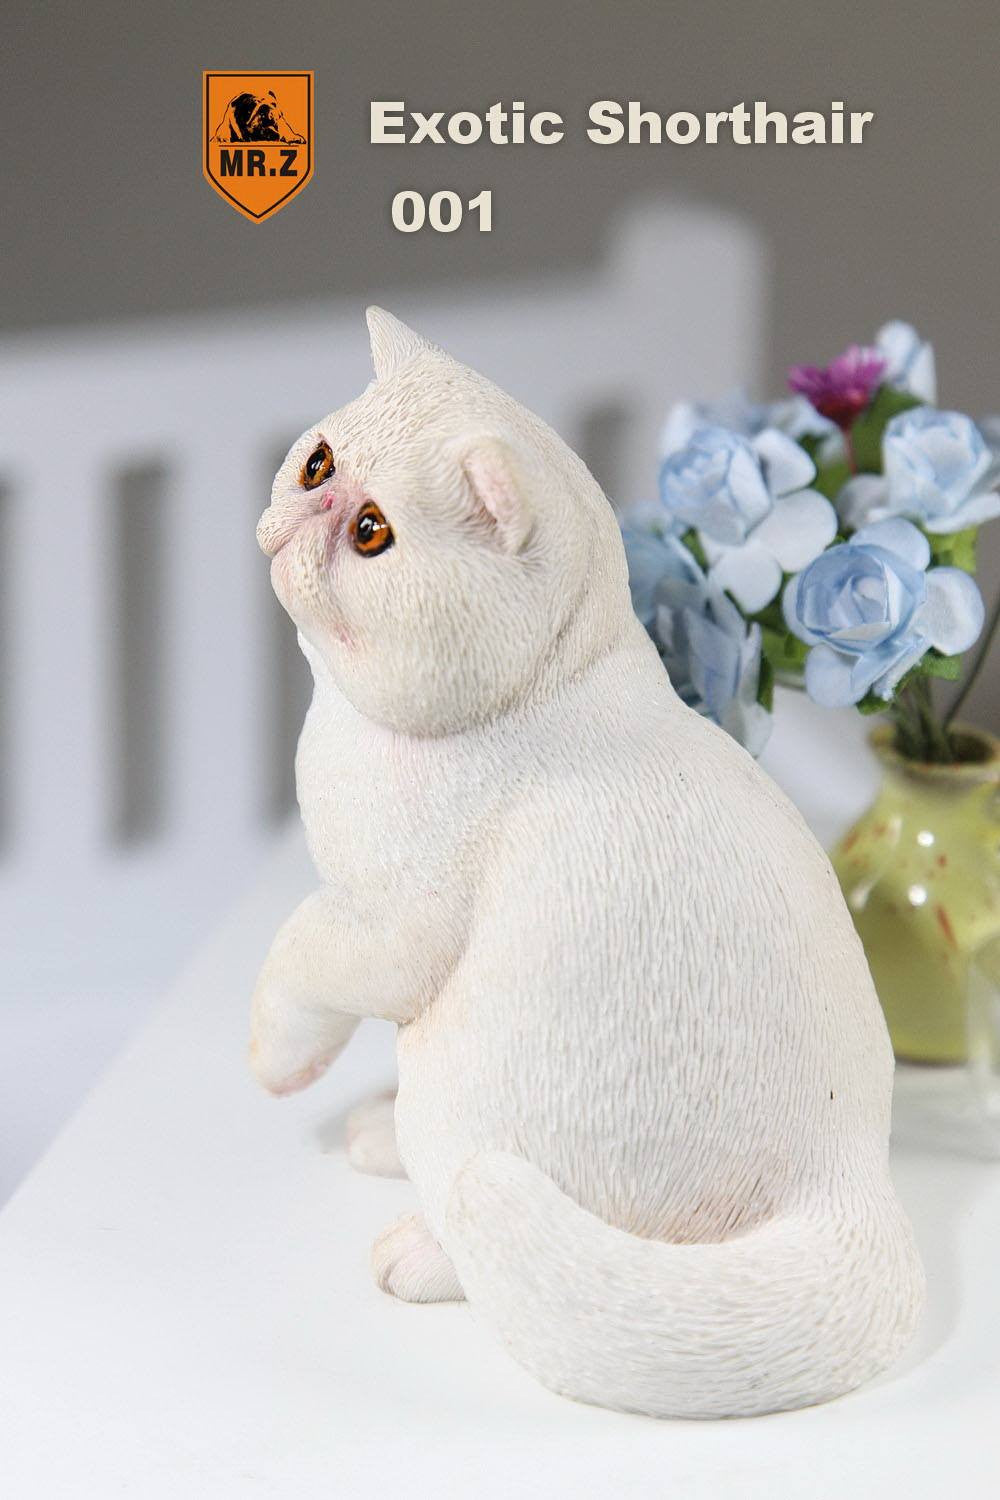 MR.Z - Real Animal Series No.8 - 1/6th Scale Exotic Shorthair Cat (Garfield) 001-005 - Marvelous Toys - 3